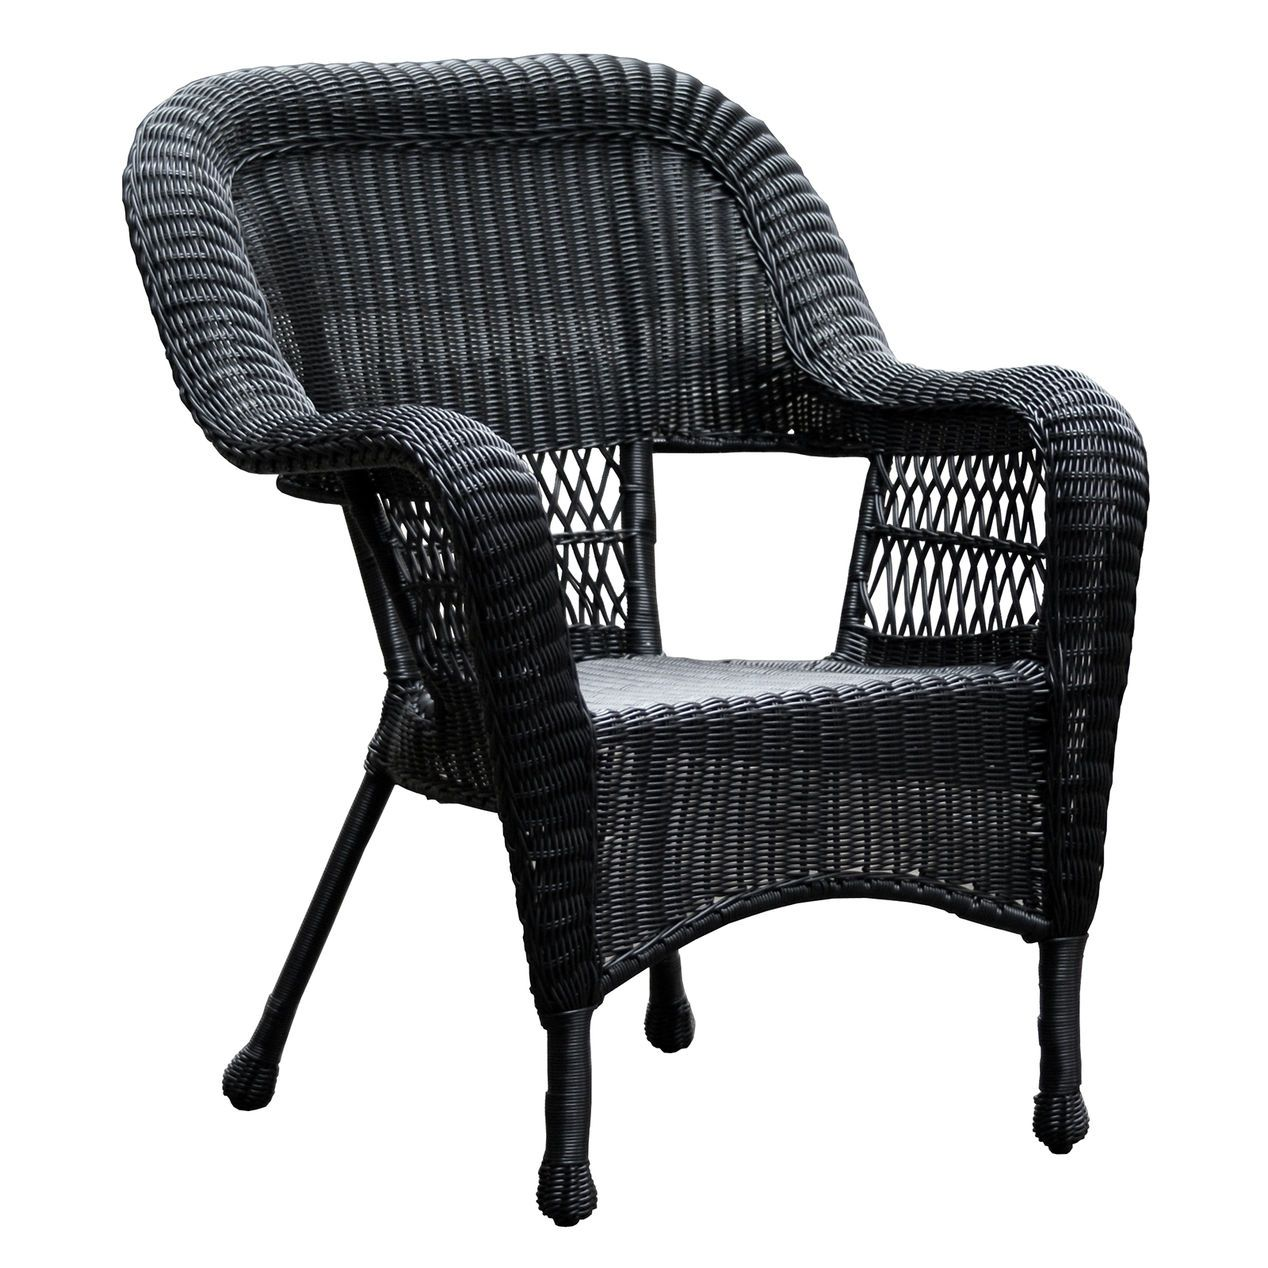 Black Wicker Outdoor Patio Chair At Home